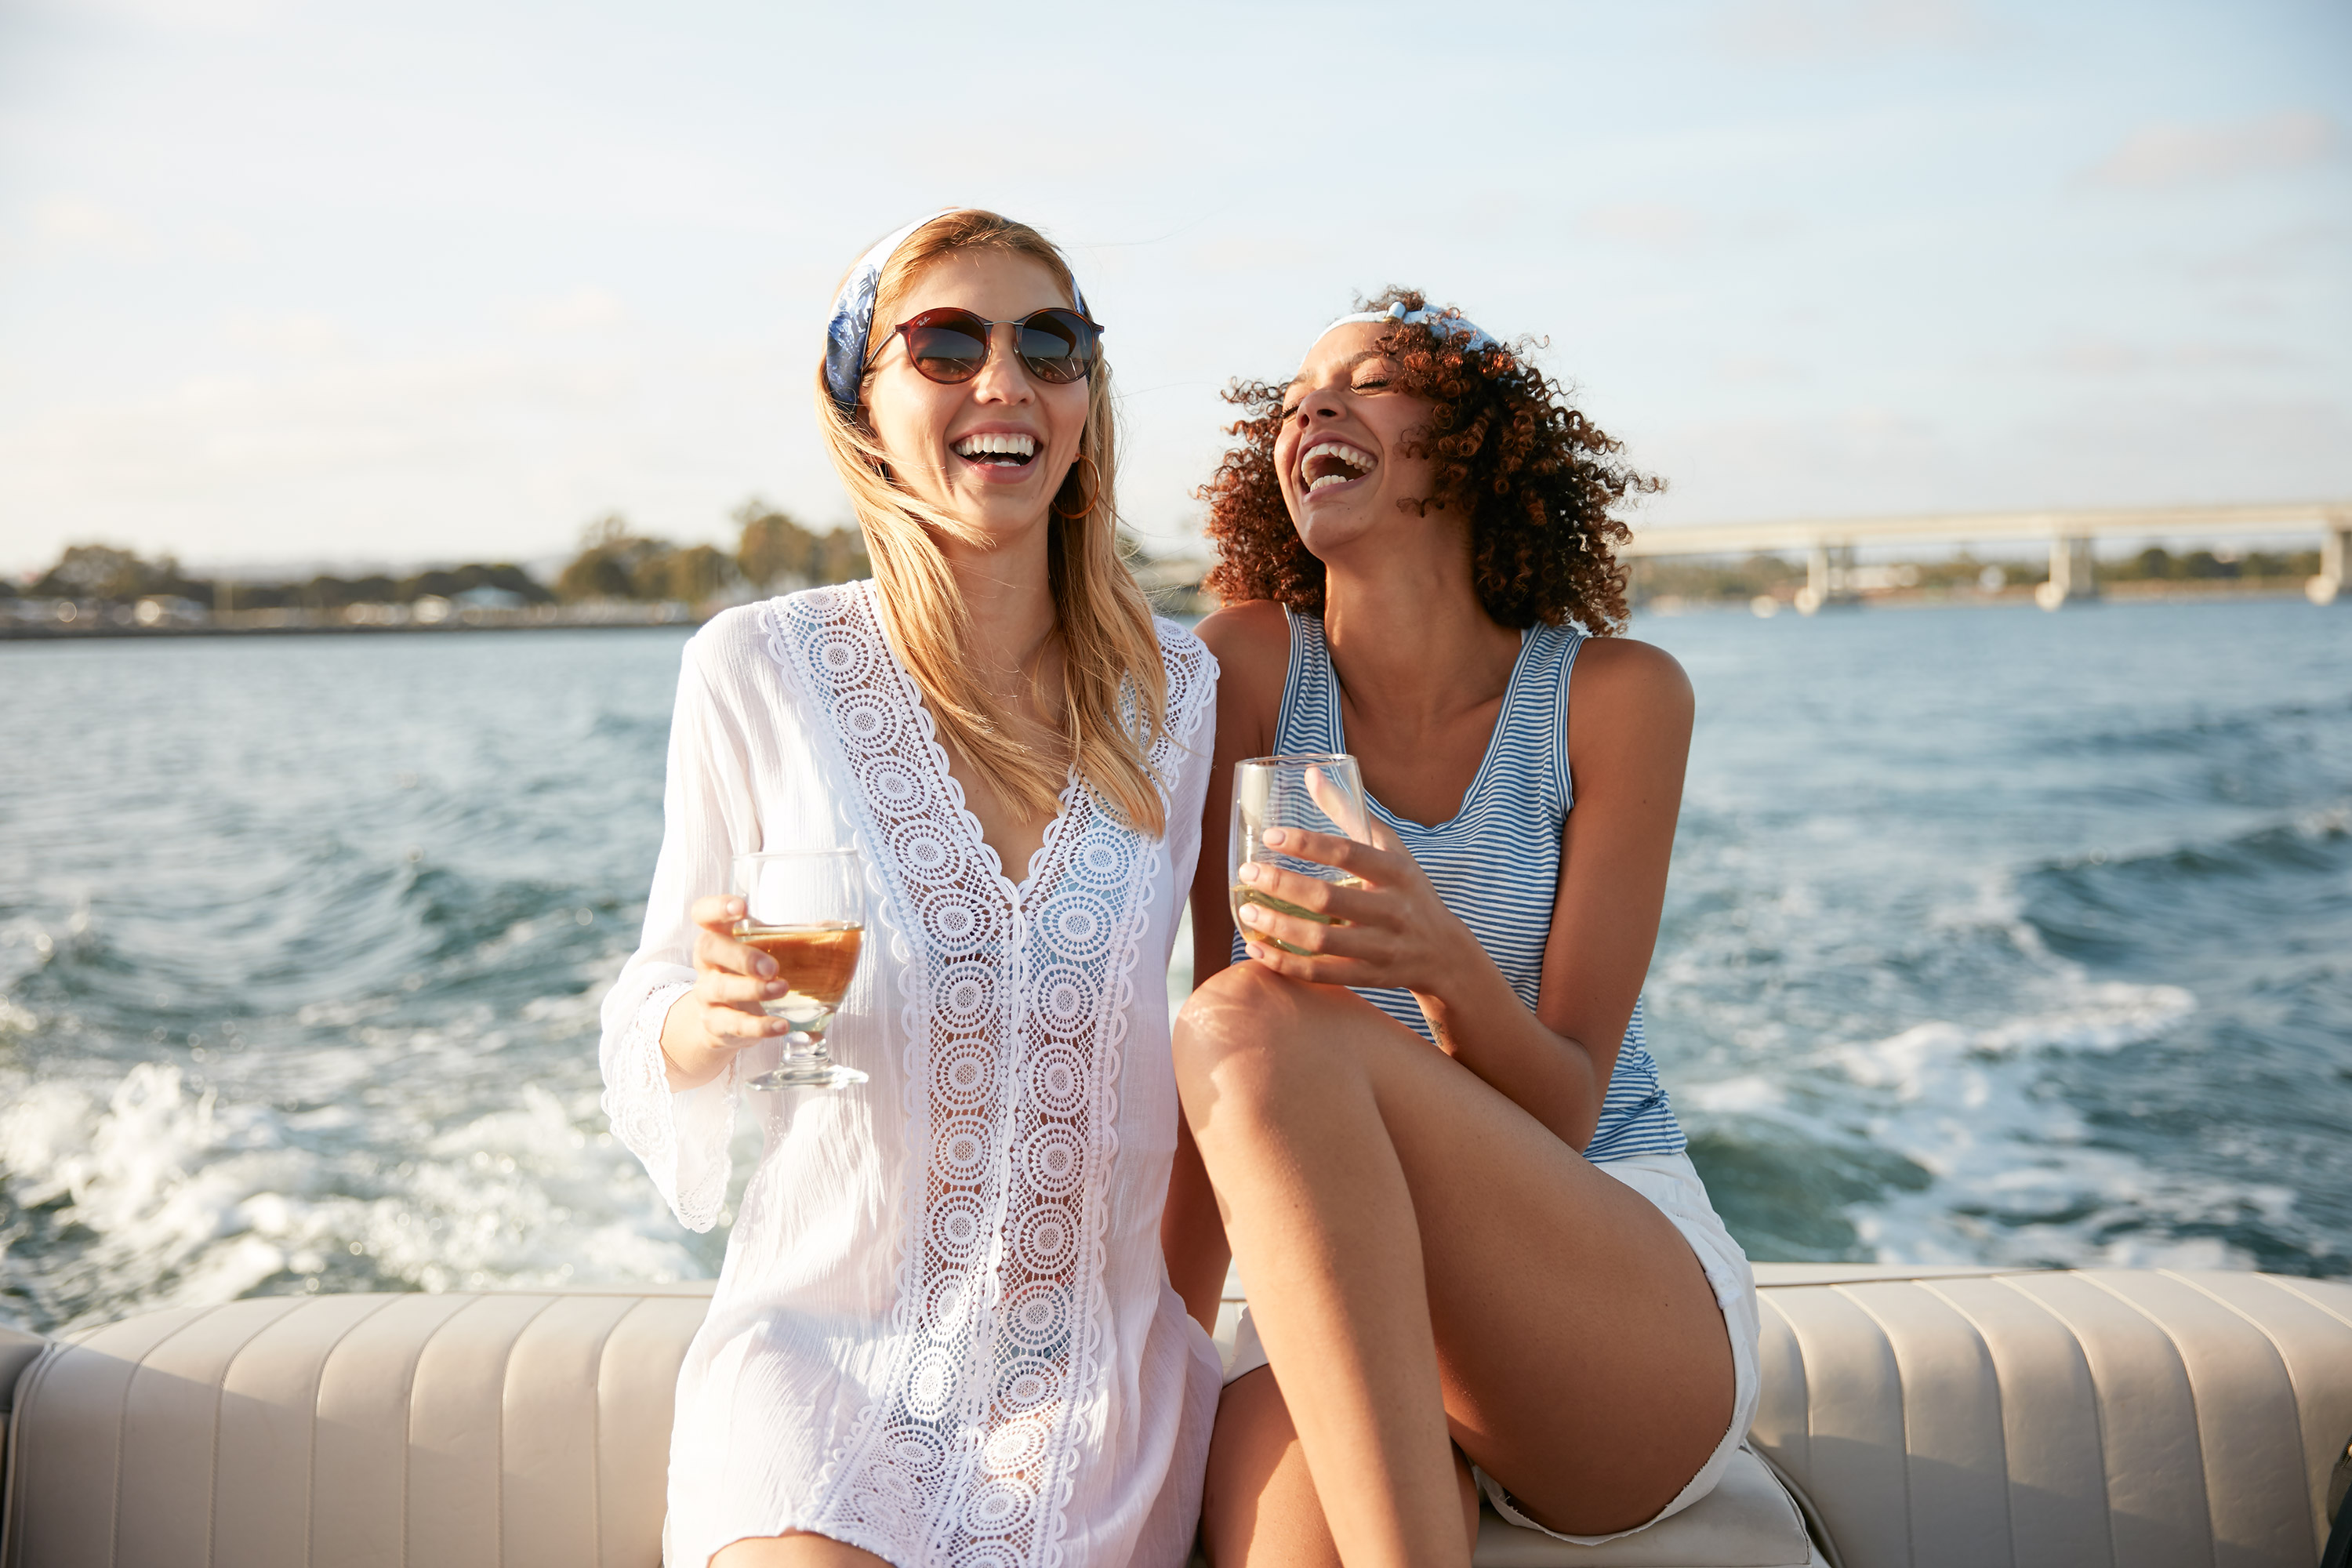 Lifestyle-032-afternoon-boating-girlfriends-upscale-fashion